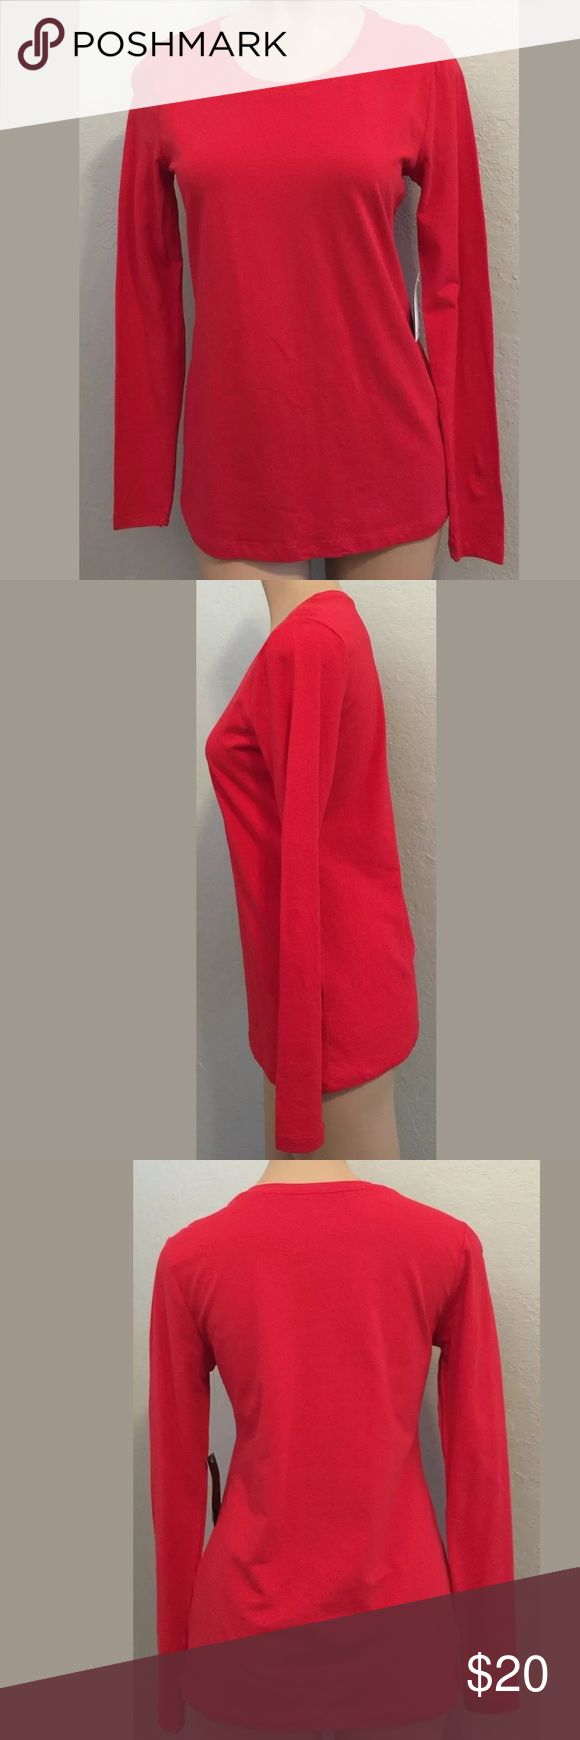 "Philosophy small red long sleeve top round neck NWT Philosophy by Republic size small red long sleeve top with round neck line. 94% Cotton 6% Spandex. Bust 17 1/4"" armpit to armpit Length 25 3/4"" side to side Measurements are approximate Philosophy by Republic  Tops"